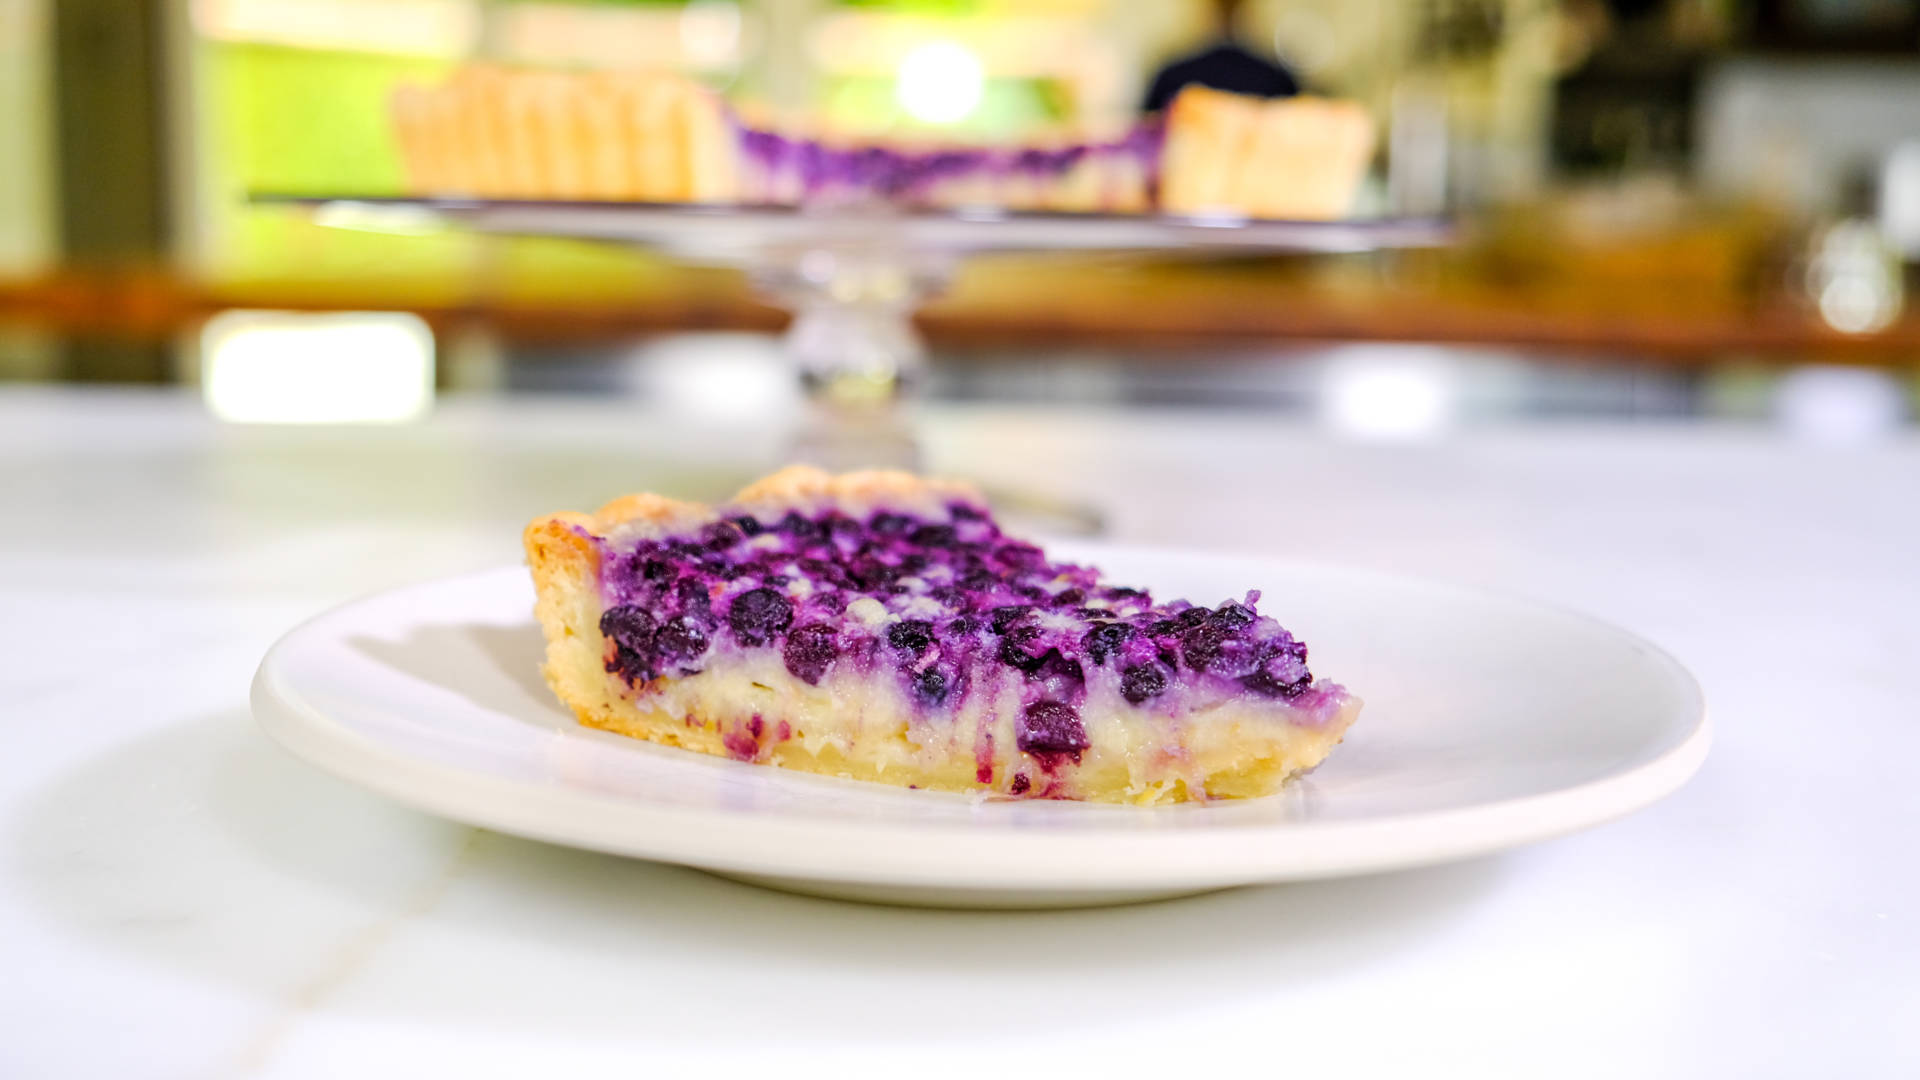 Wild blueberries and lemon make this tart a real treat.